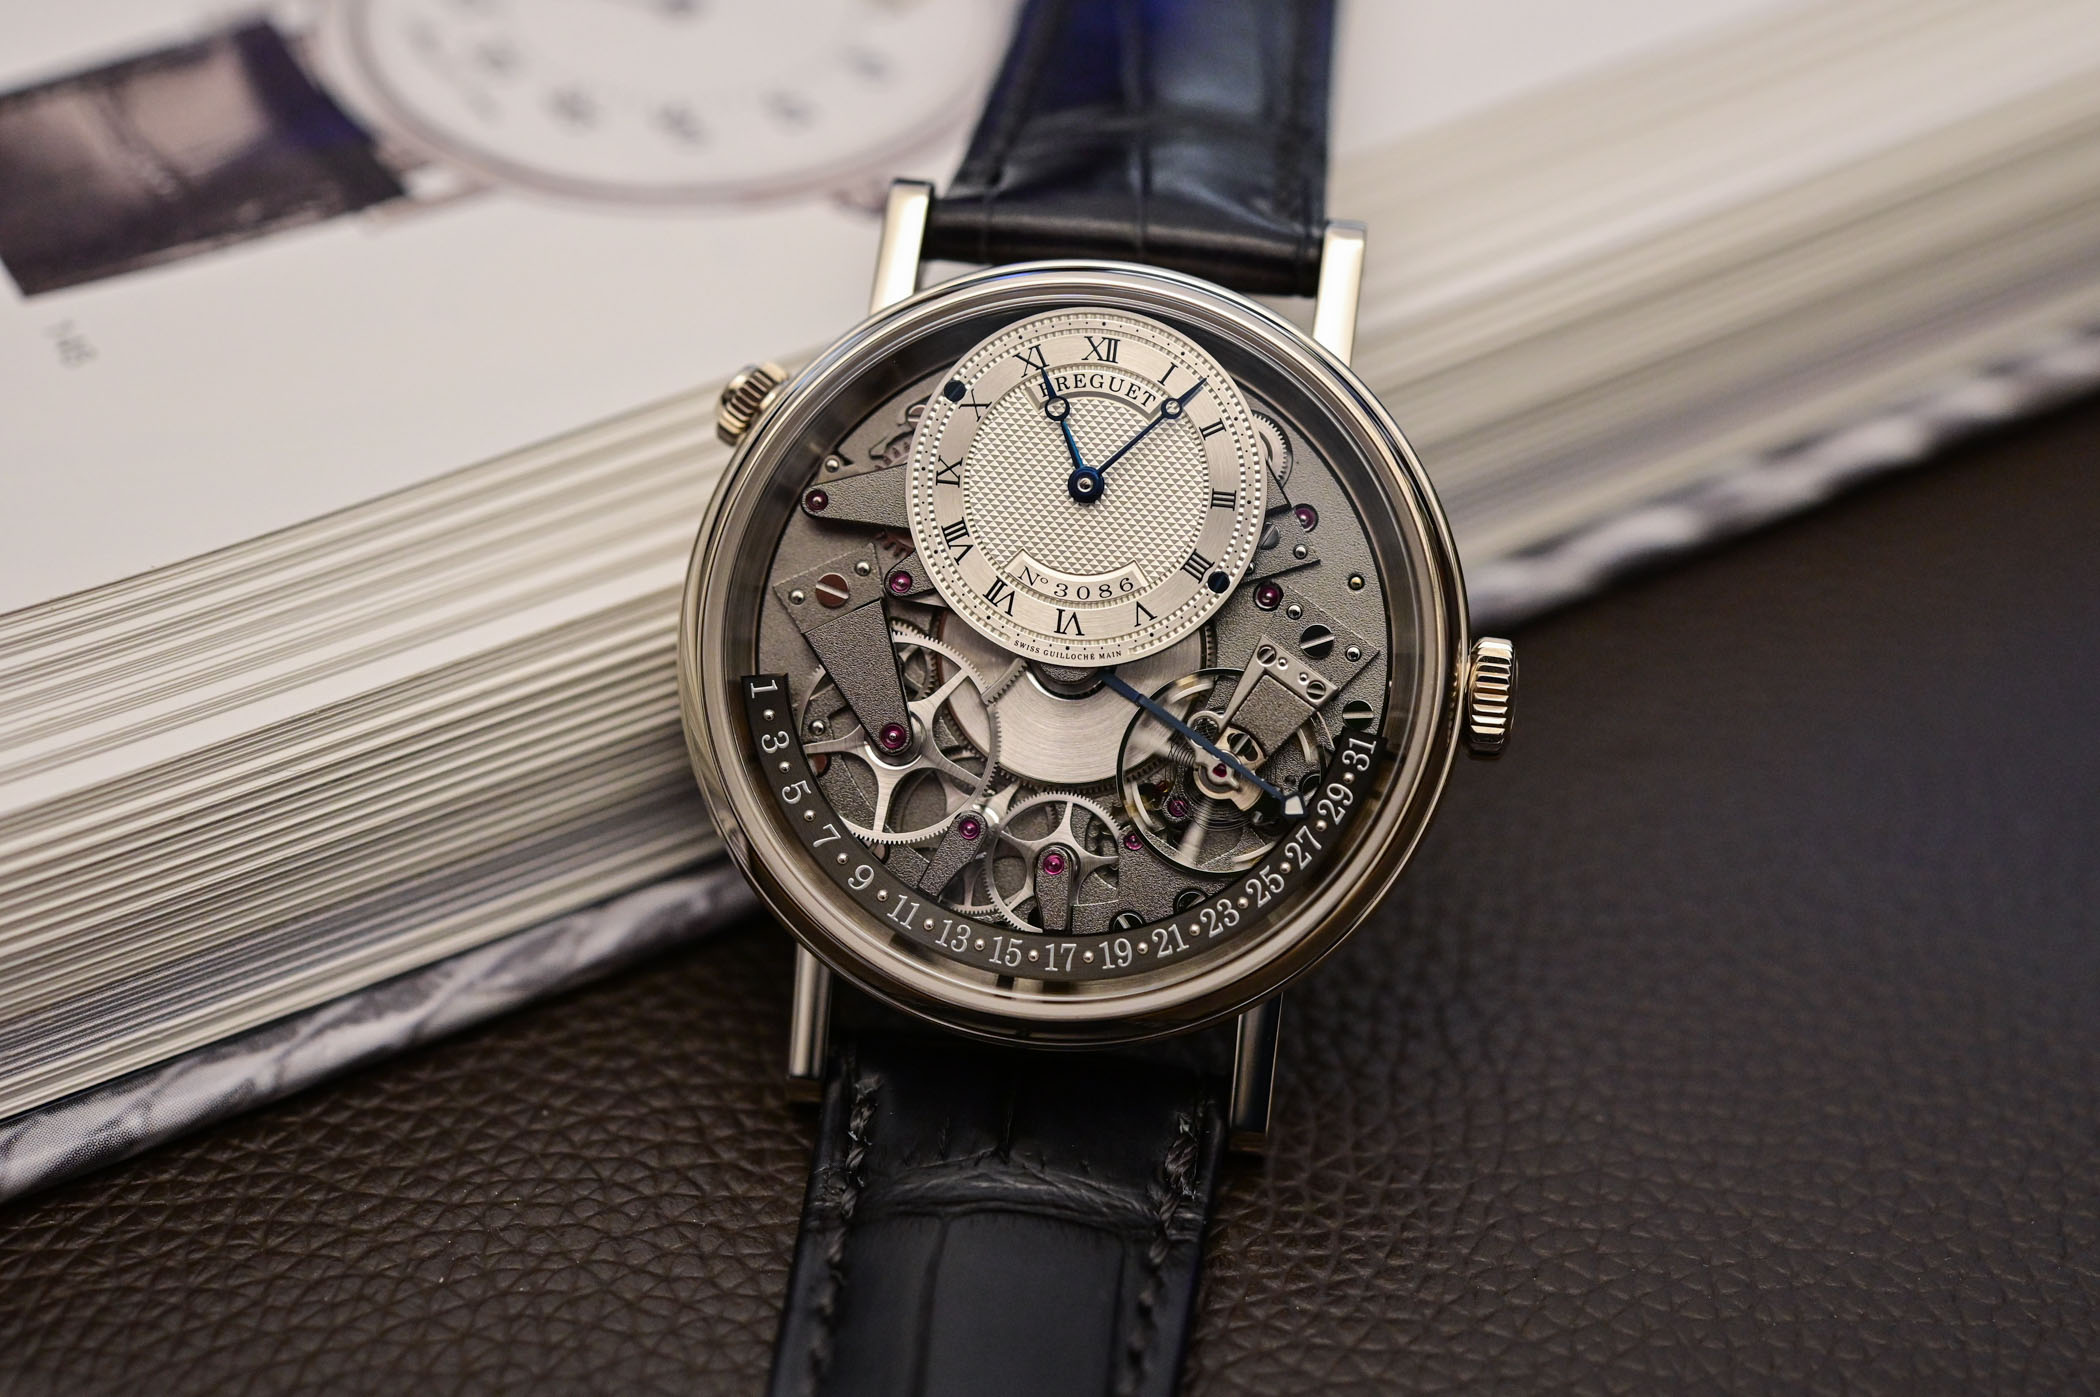 Breguet Tradition Quantieme Retrograde 7597